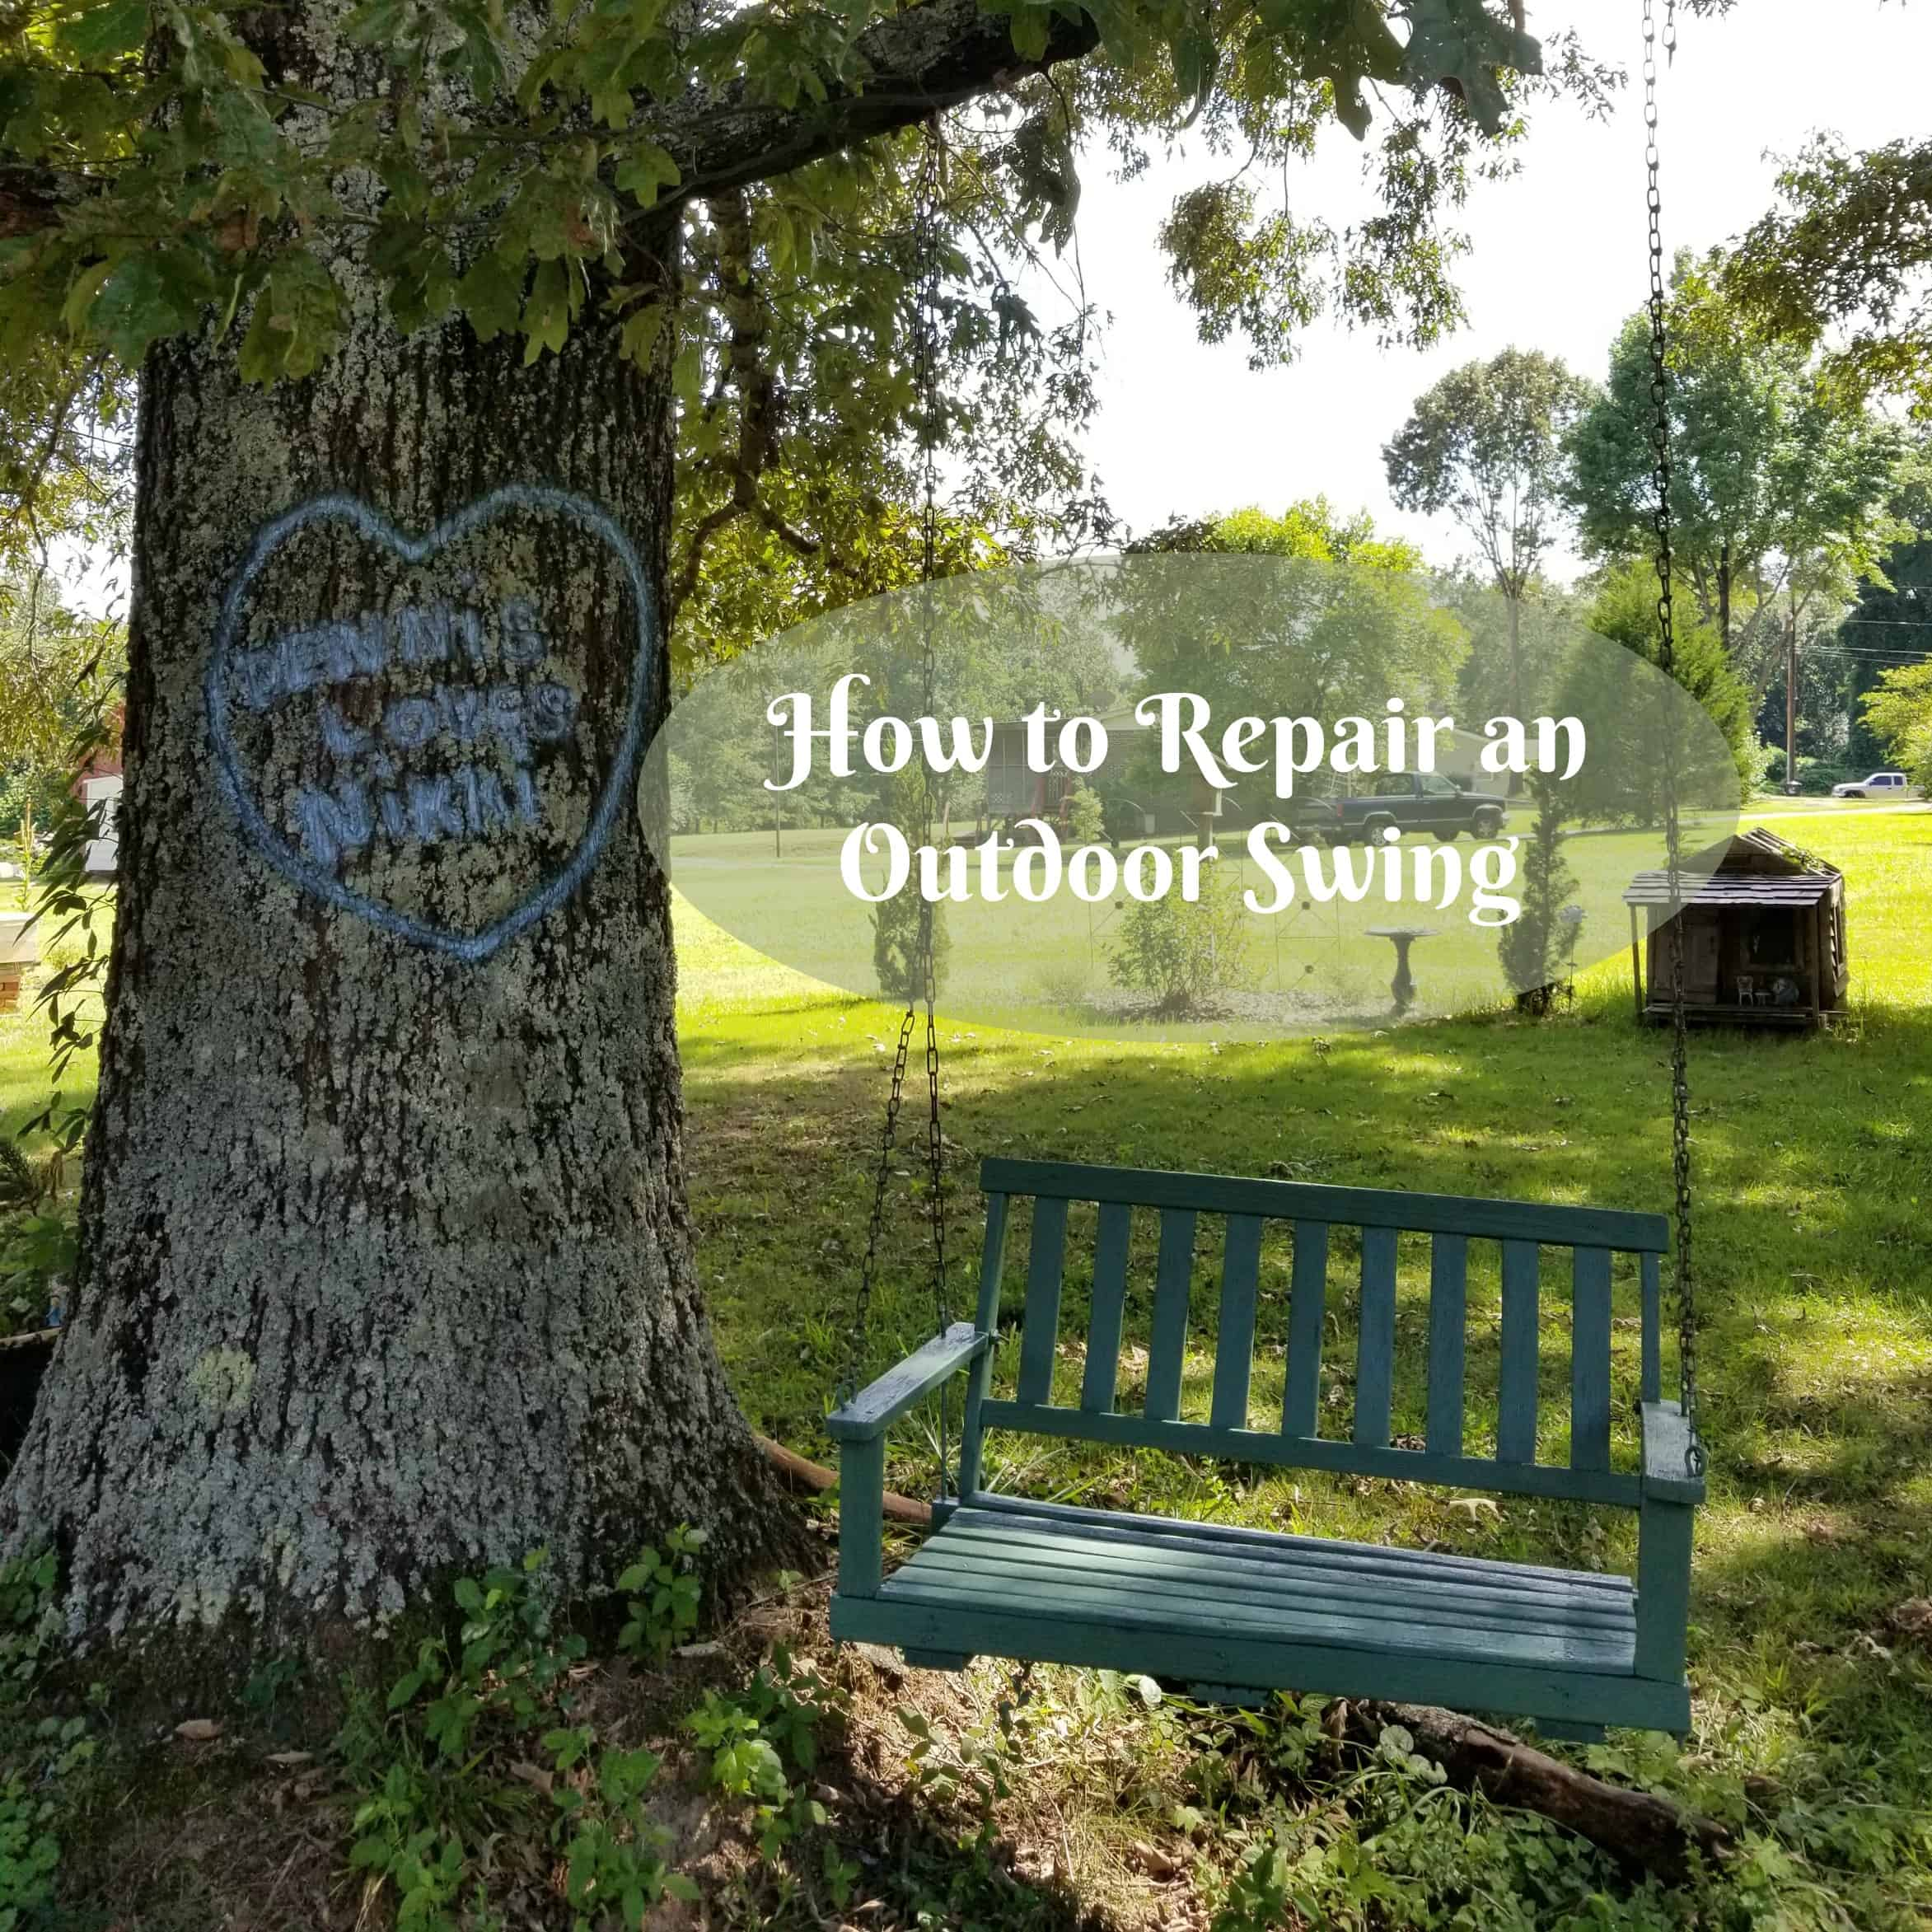 Outdoor swing repair